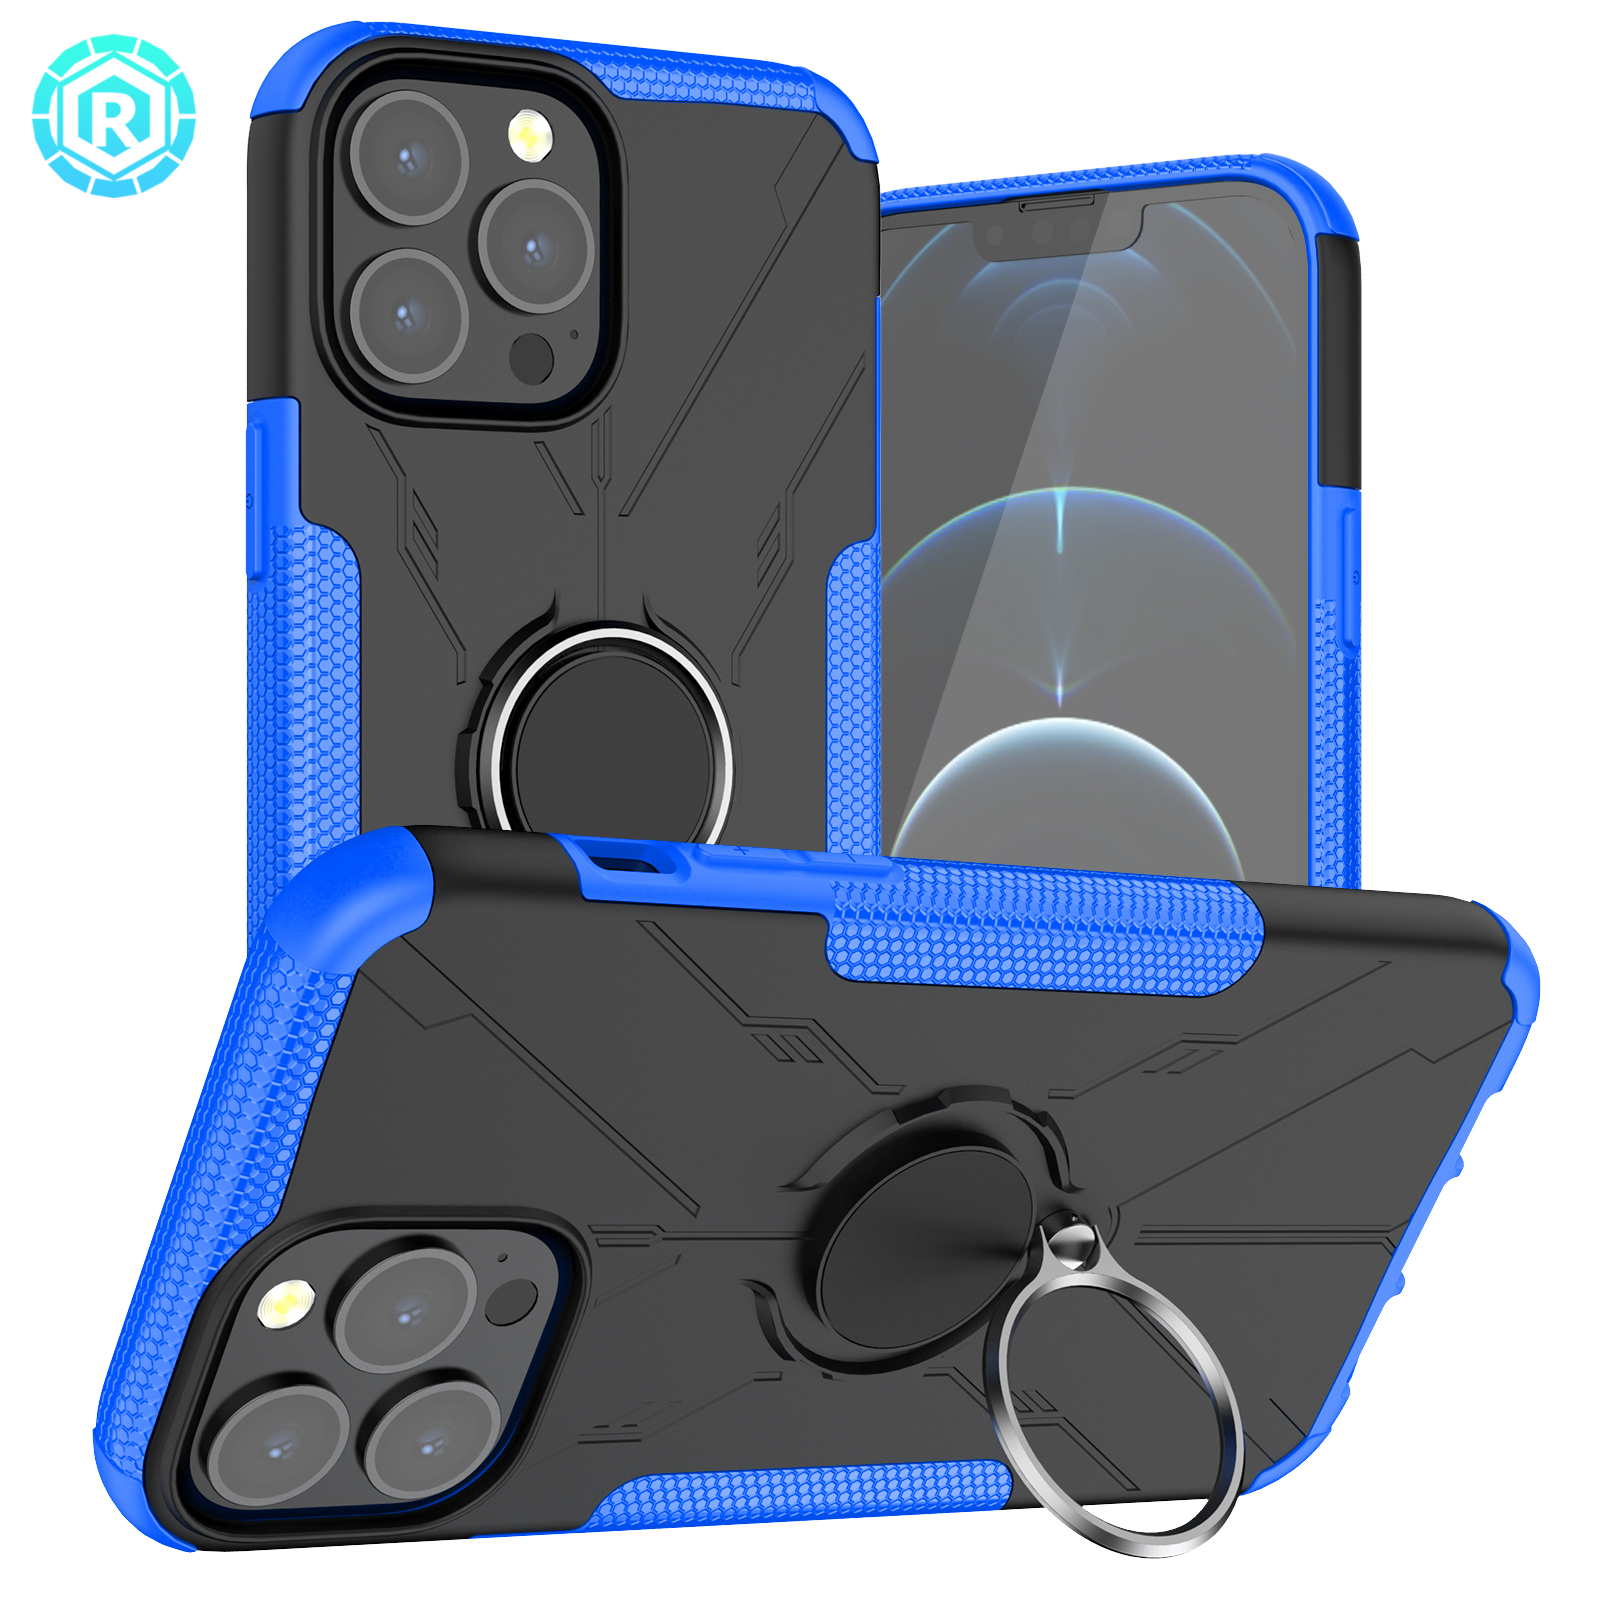 Mecha Phone Case For iPhone 13 Pro Max